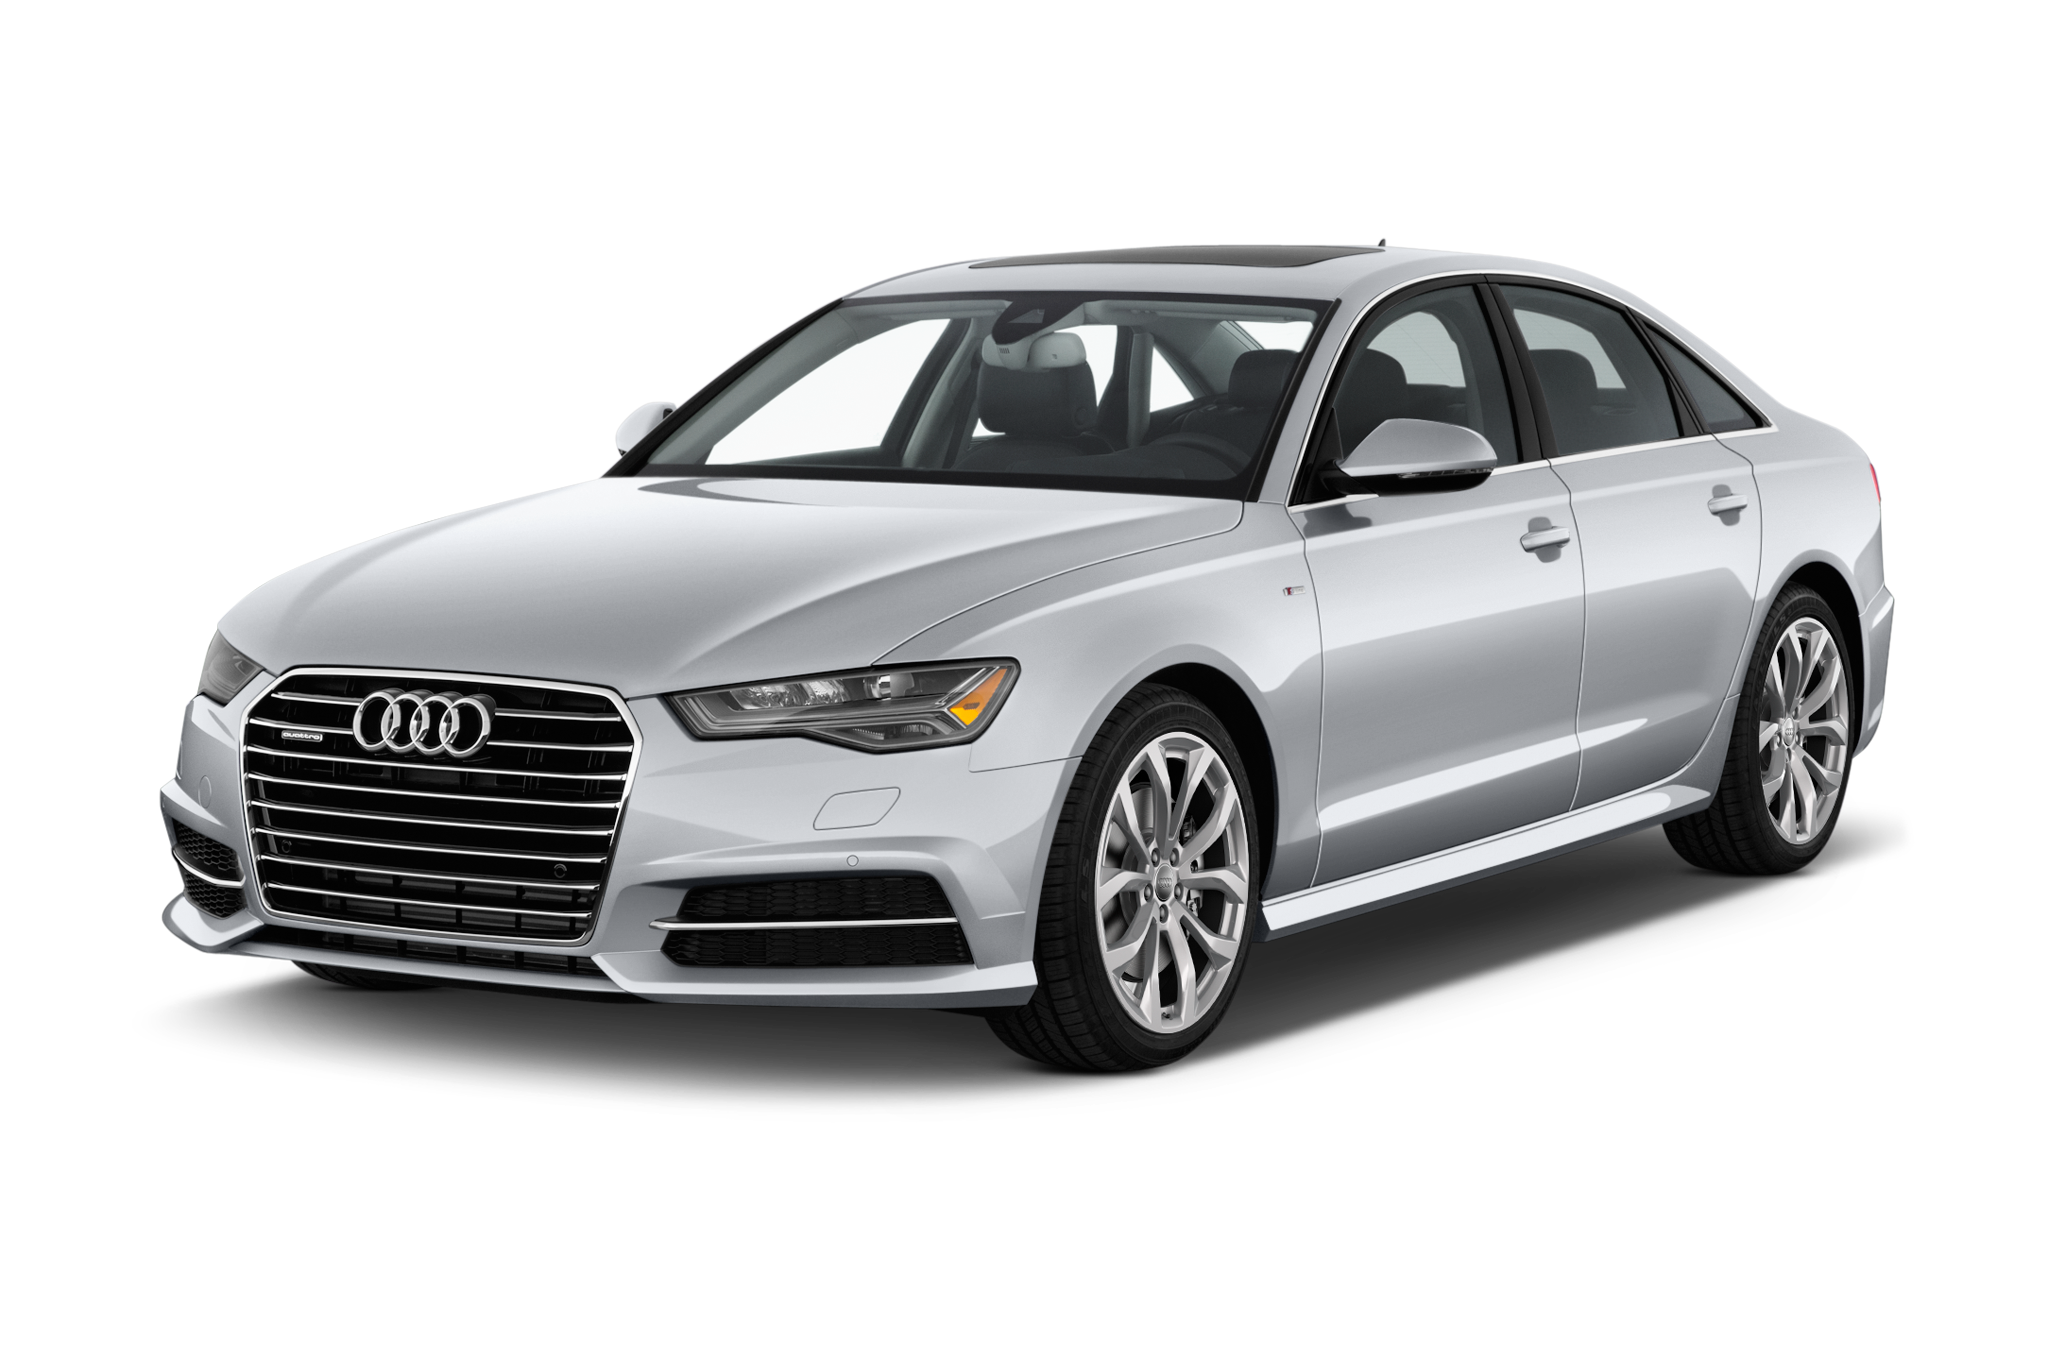 2017 Audi A6 and A7 Gain New Tech and Mild Exterior Styling Tweaks Audi A Inlays Piano Black on audi s6 black, audi s8 black, mazda mazda3 black, audi a7 black, 2016 audi rs black, audi a3, range rover black, audi s7 black, audi black edition, audi tt black, audi b7 black, audi s5 black, audi a5, mercedes-benz e350 black, volkswagen passat tdi black, audi a8, honda accord sedan black, audi a4, audi q5, mercedes-benz cl550 black,